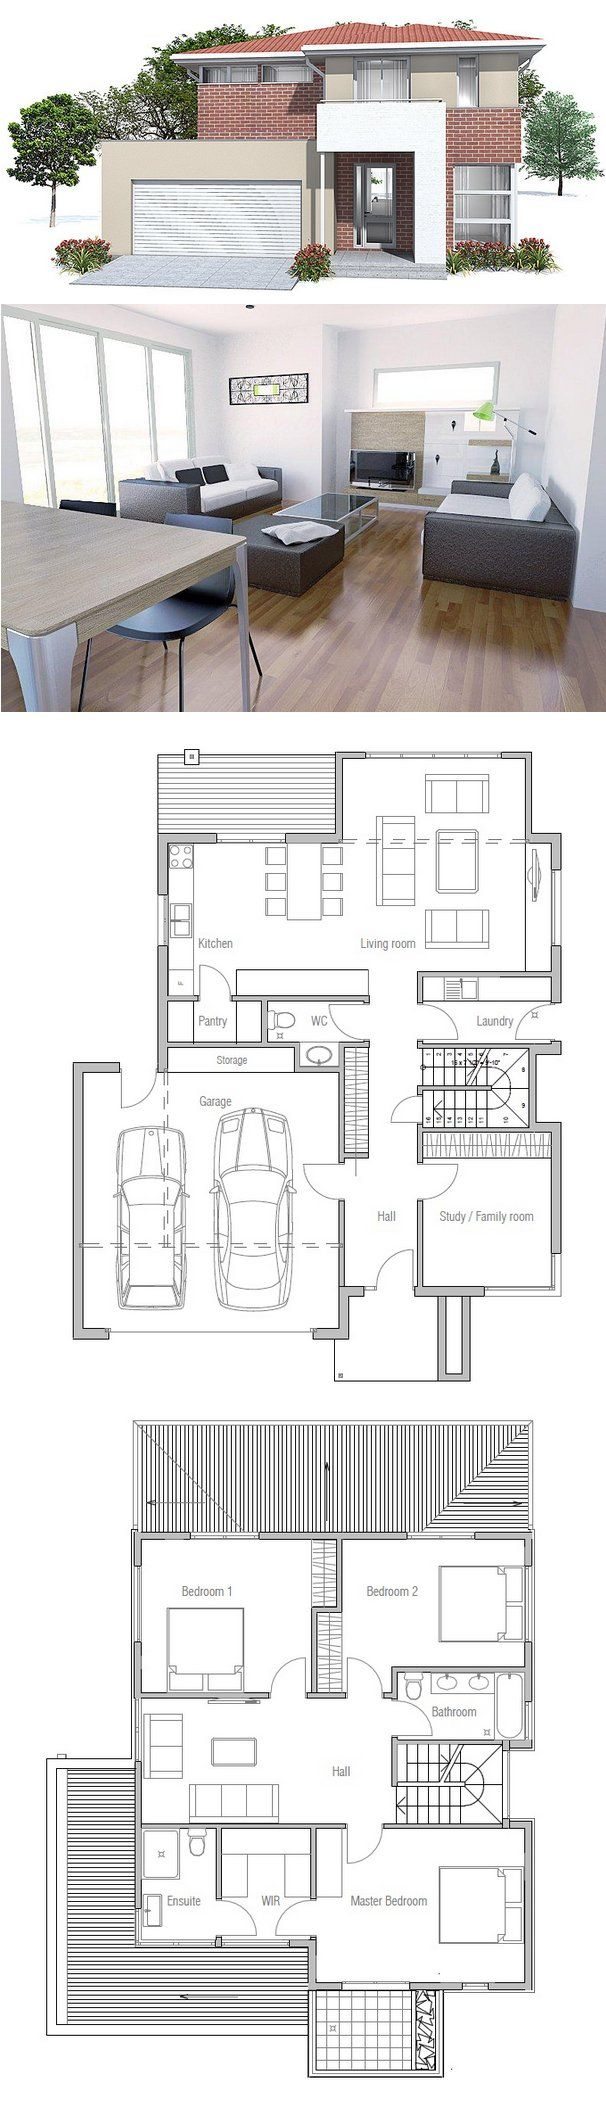 Modern House Plan with three bedrooms. Floor Plan from ConceptHome.com. Modern Architecture